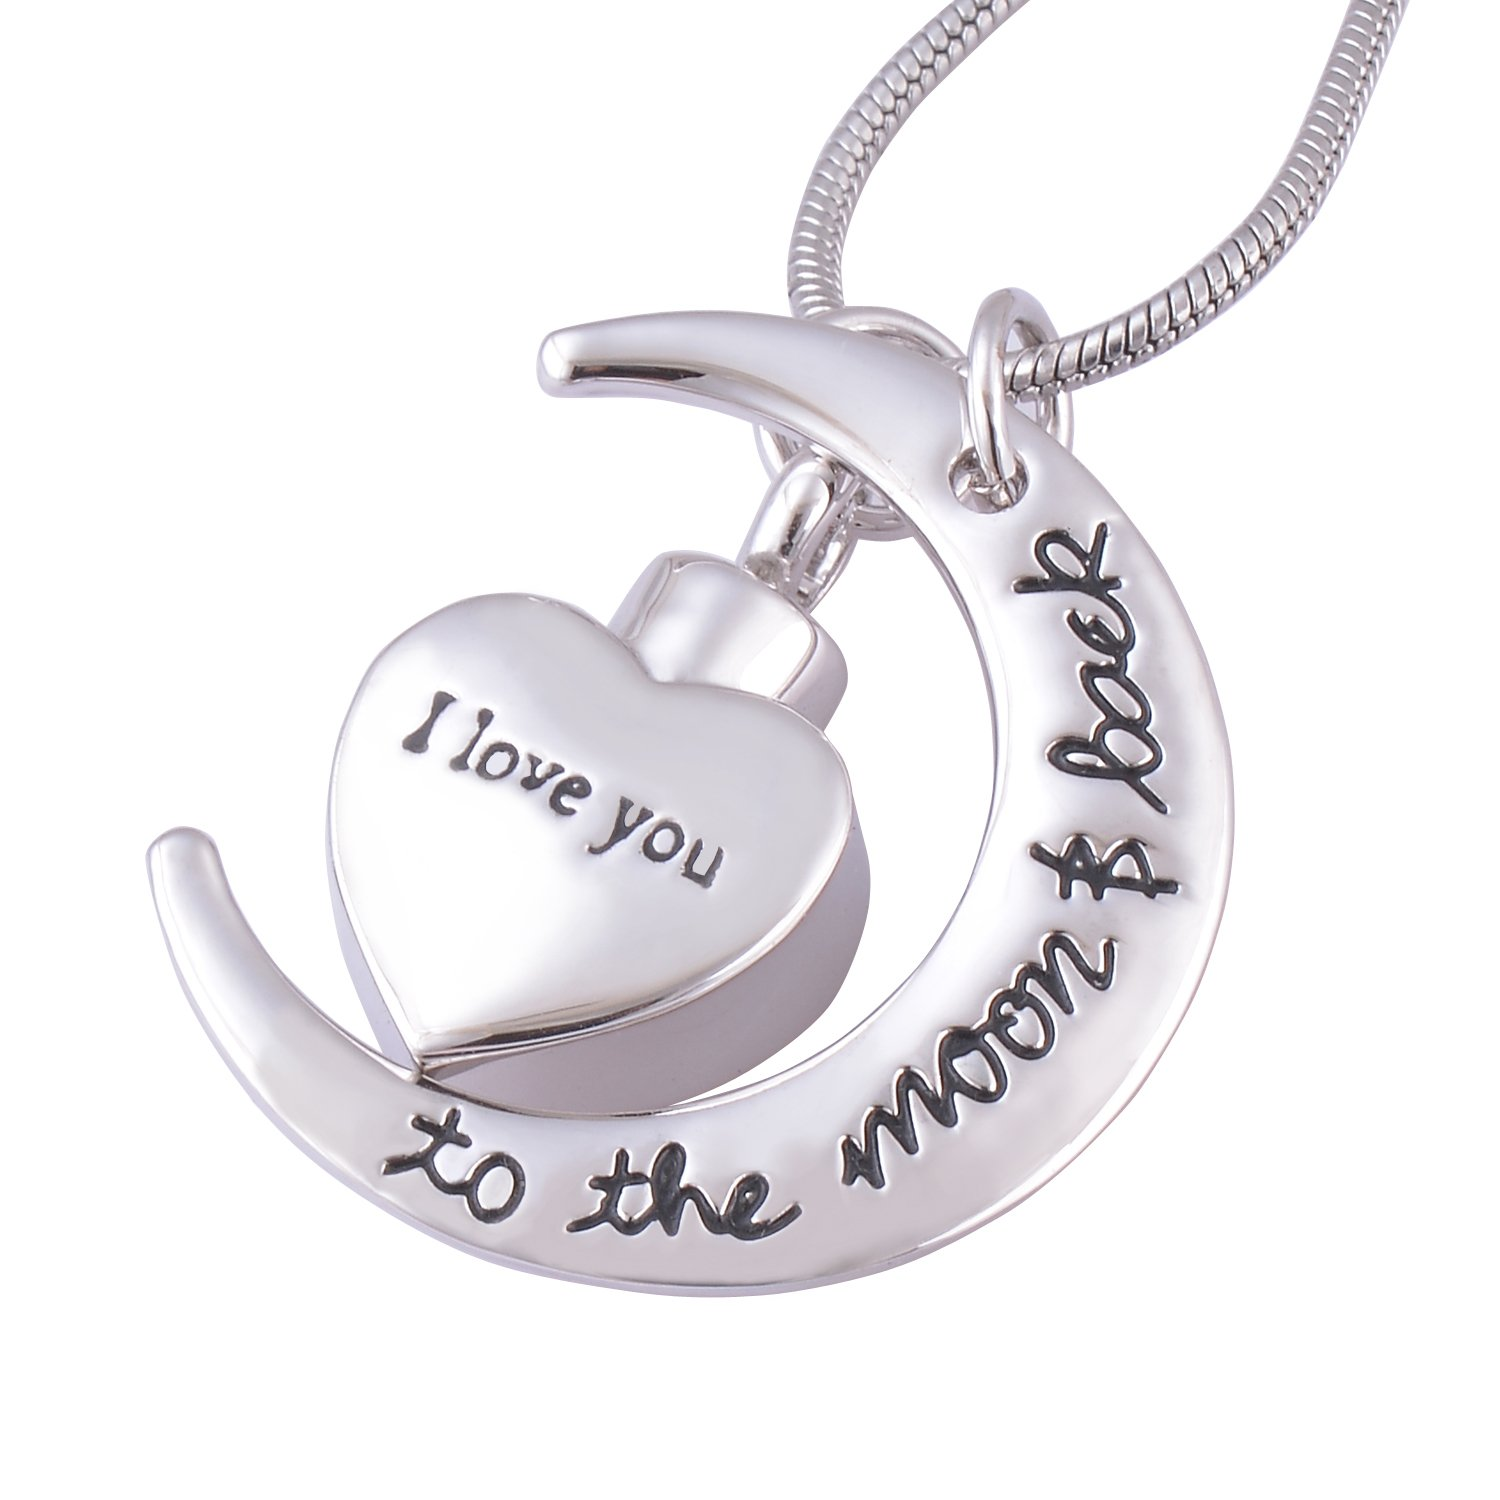 international inc passages necklace jewelry memorial